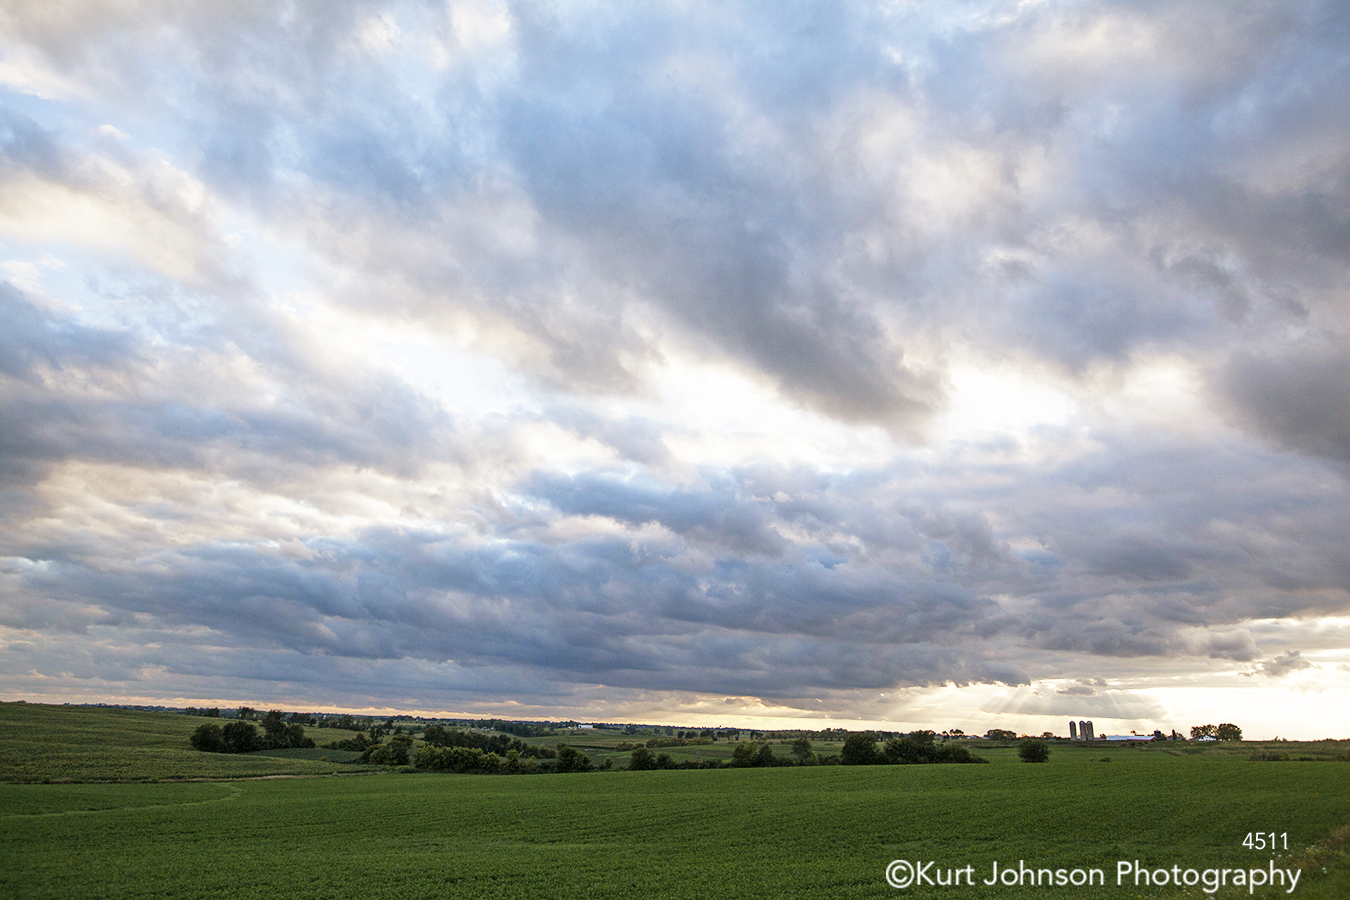 midwest landscape blue sky clouds green grass trees country field